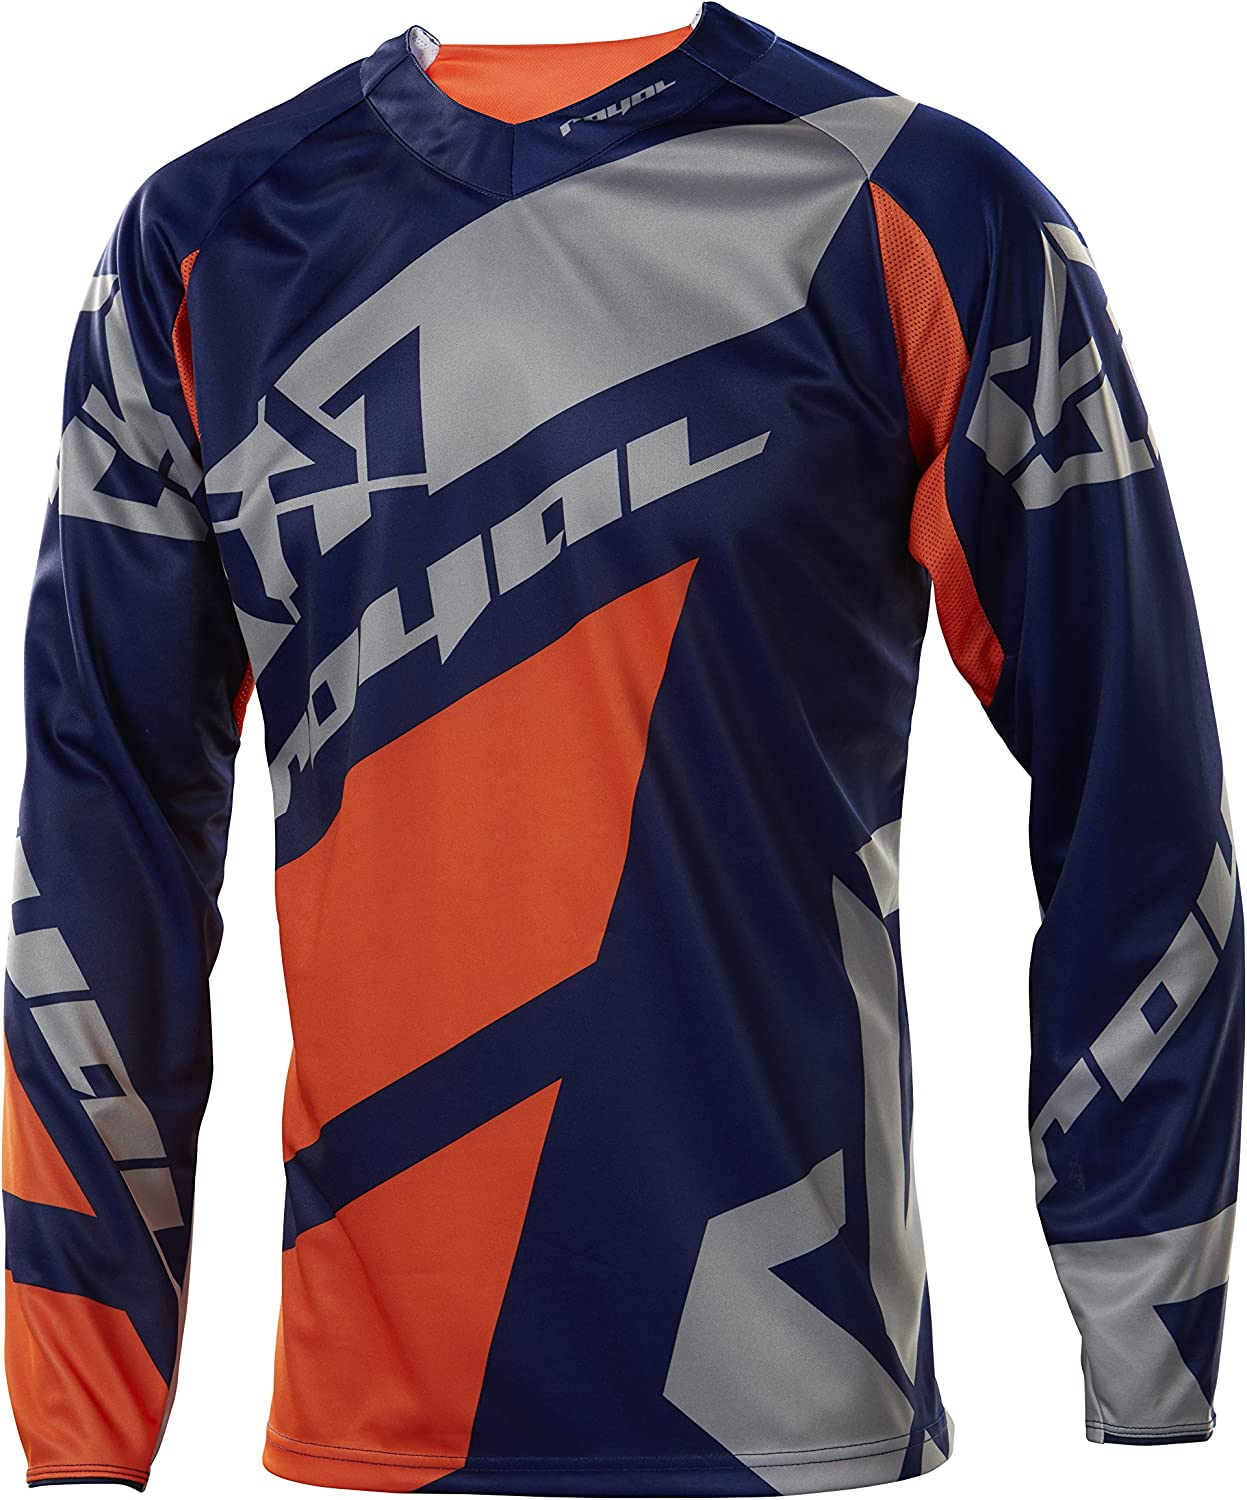 Royal Racing Victory Race Mtb Jersey Various Sizes and Colours Available